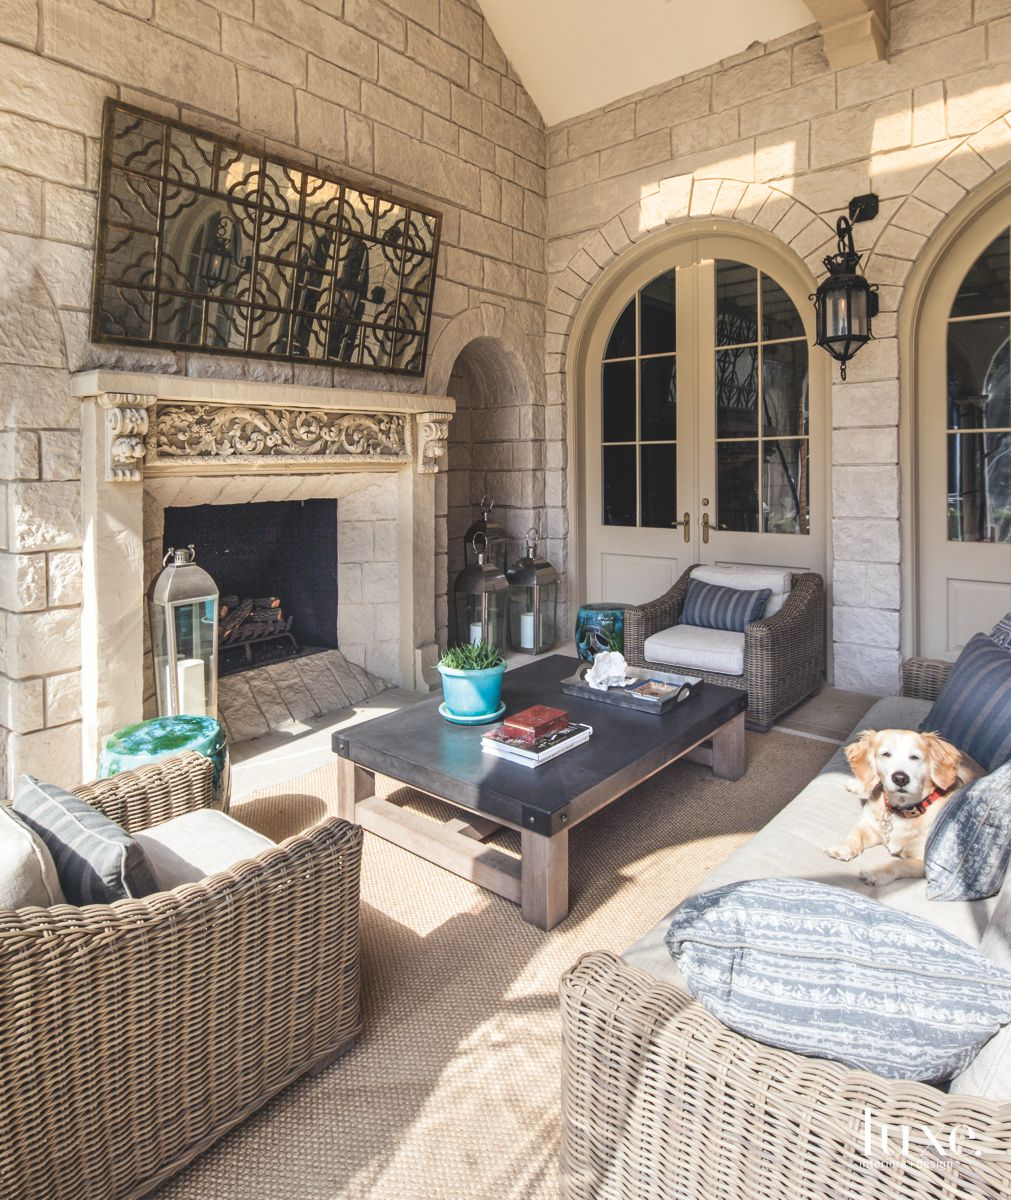 Wicker Outdoor Seating Area with Fireplace and Dog